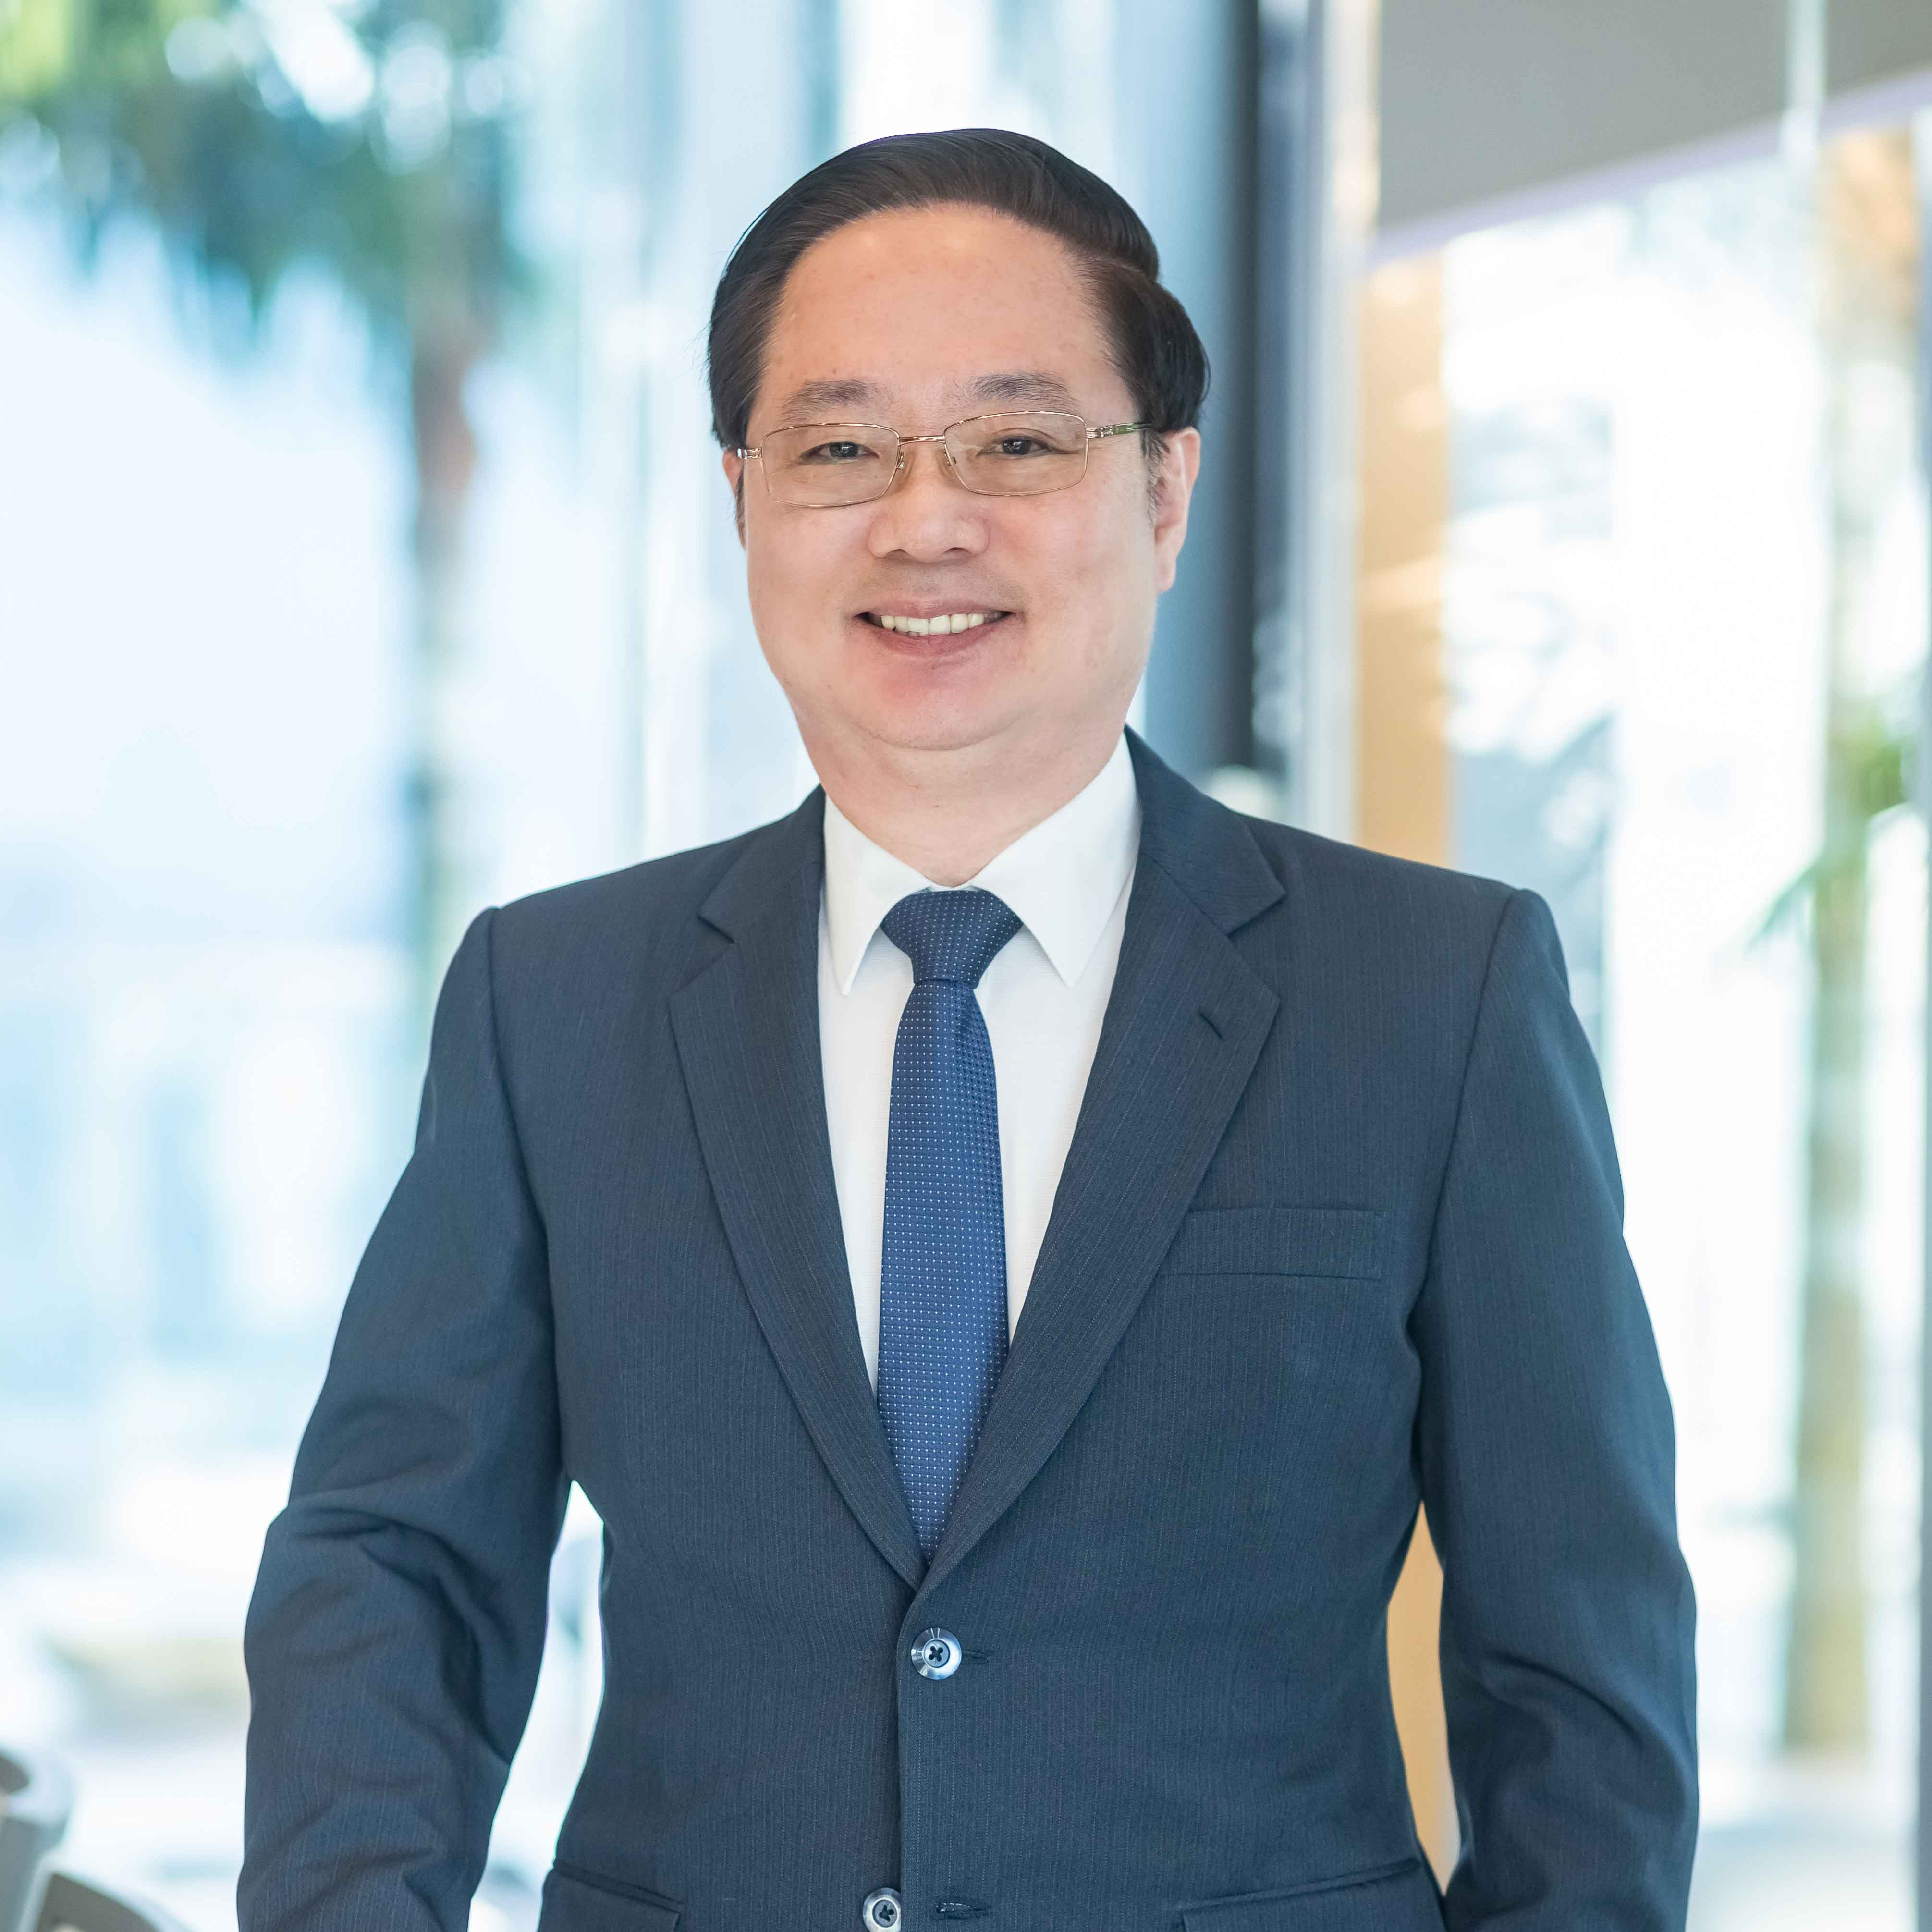 Dr. Loke Kah Leong - Obstetrician and gynaecologist